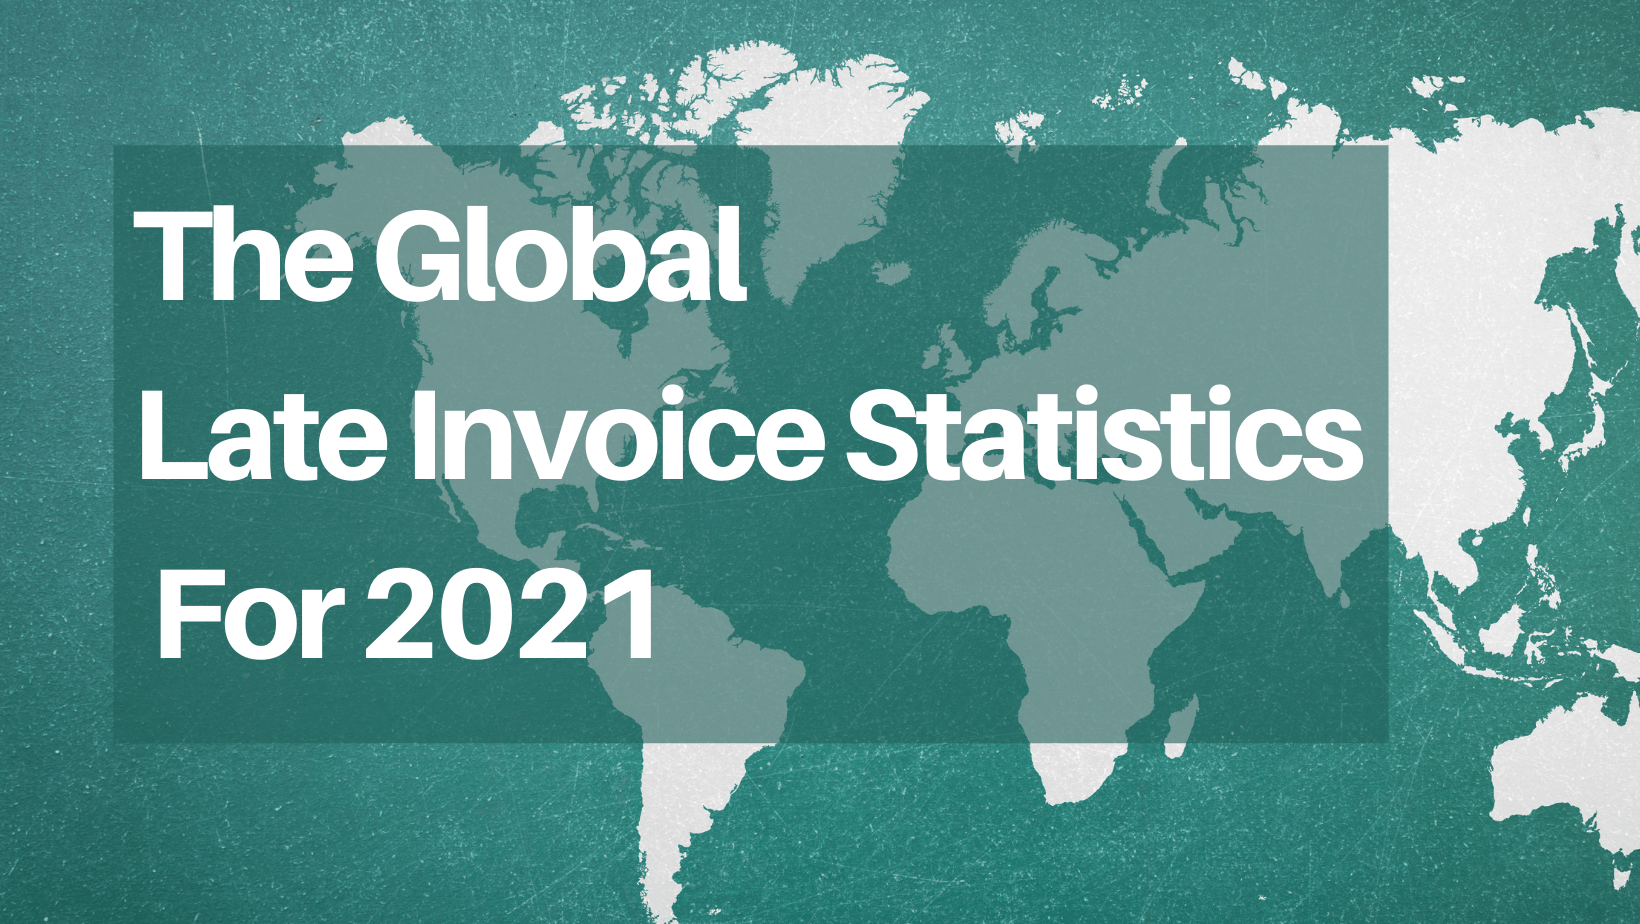 Global Invoicing Statistics (Invoices Being Paid Late) to Reach Nearly 25 Billion by 2027 Reports Brodmin